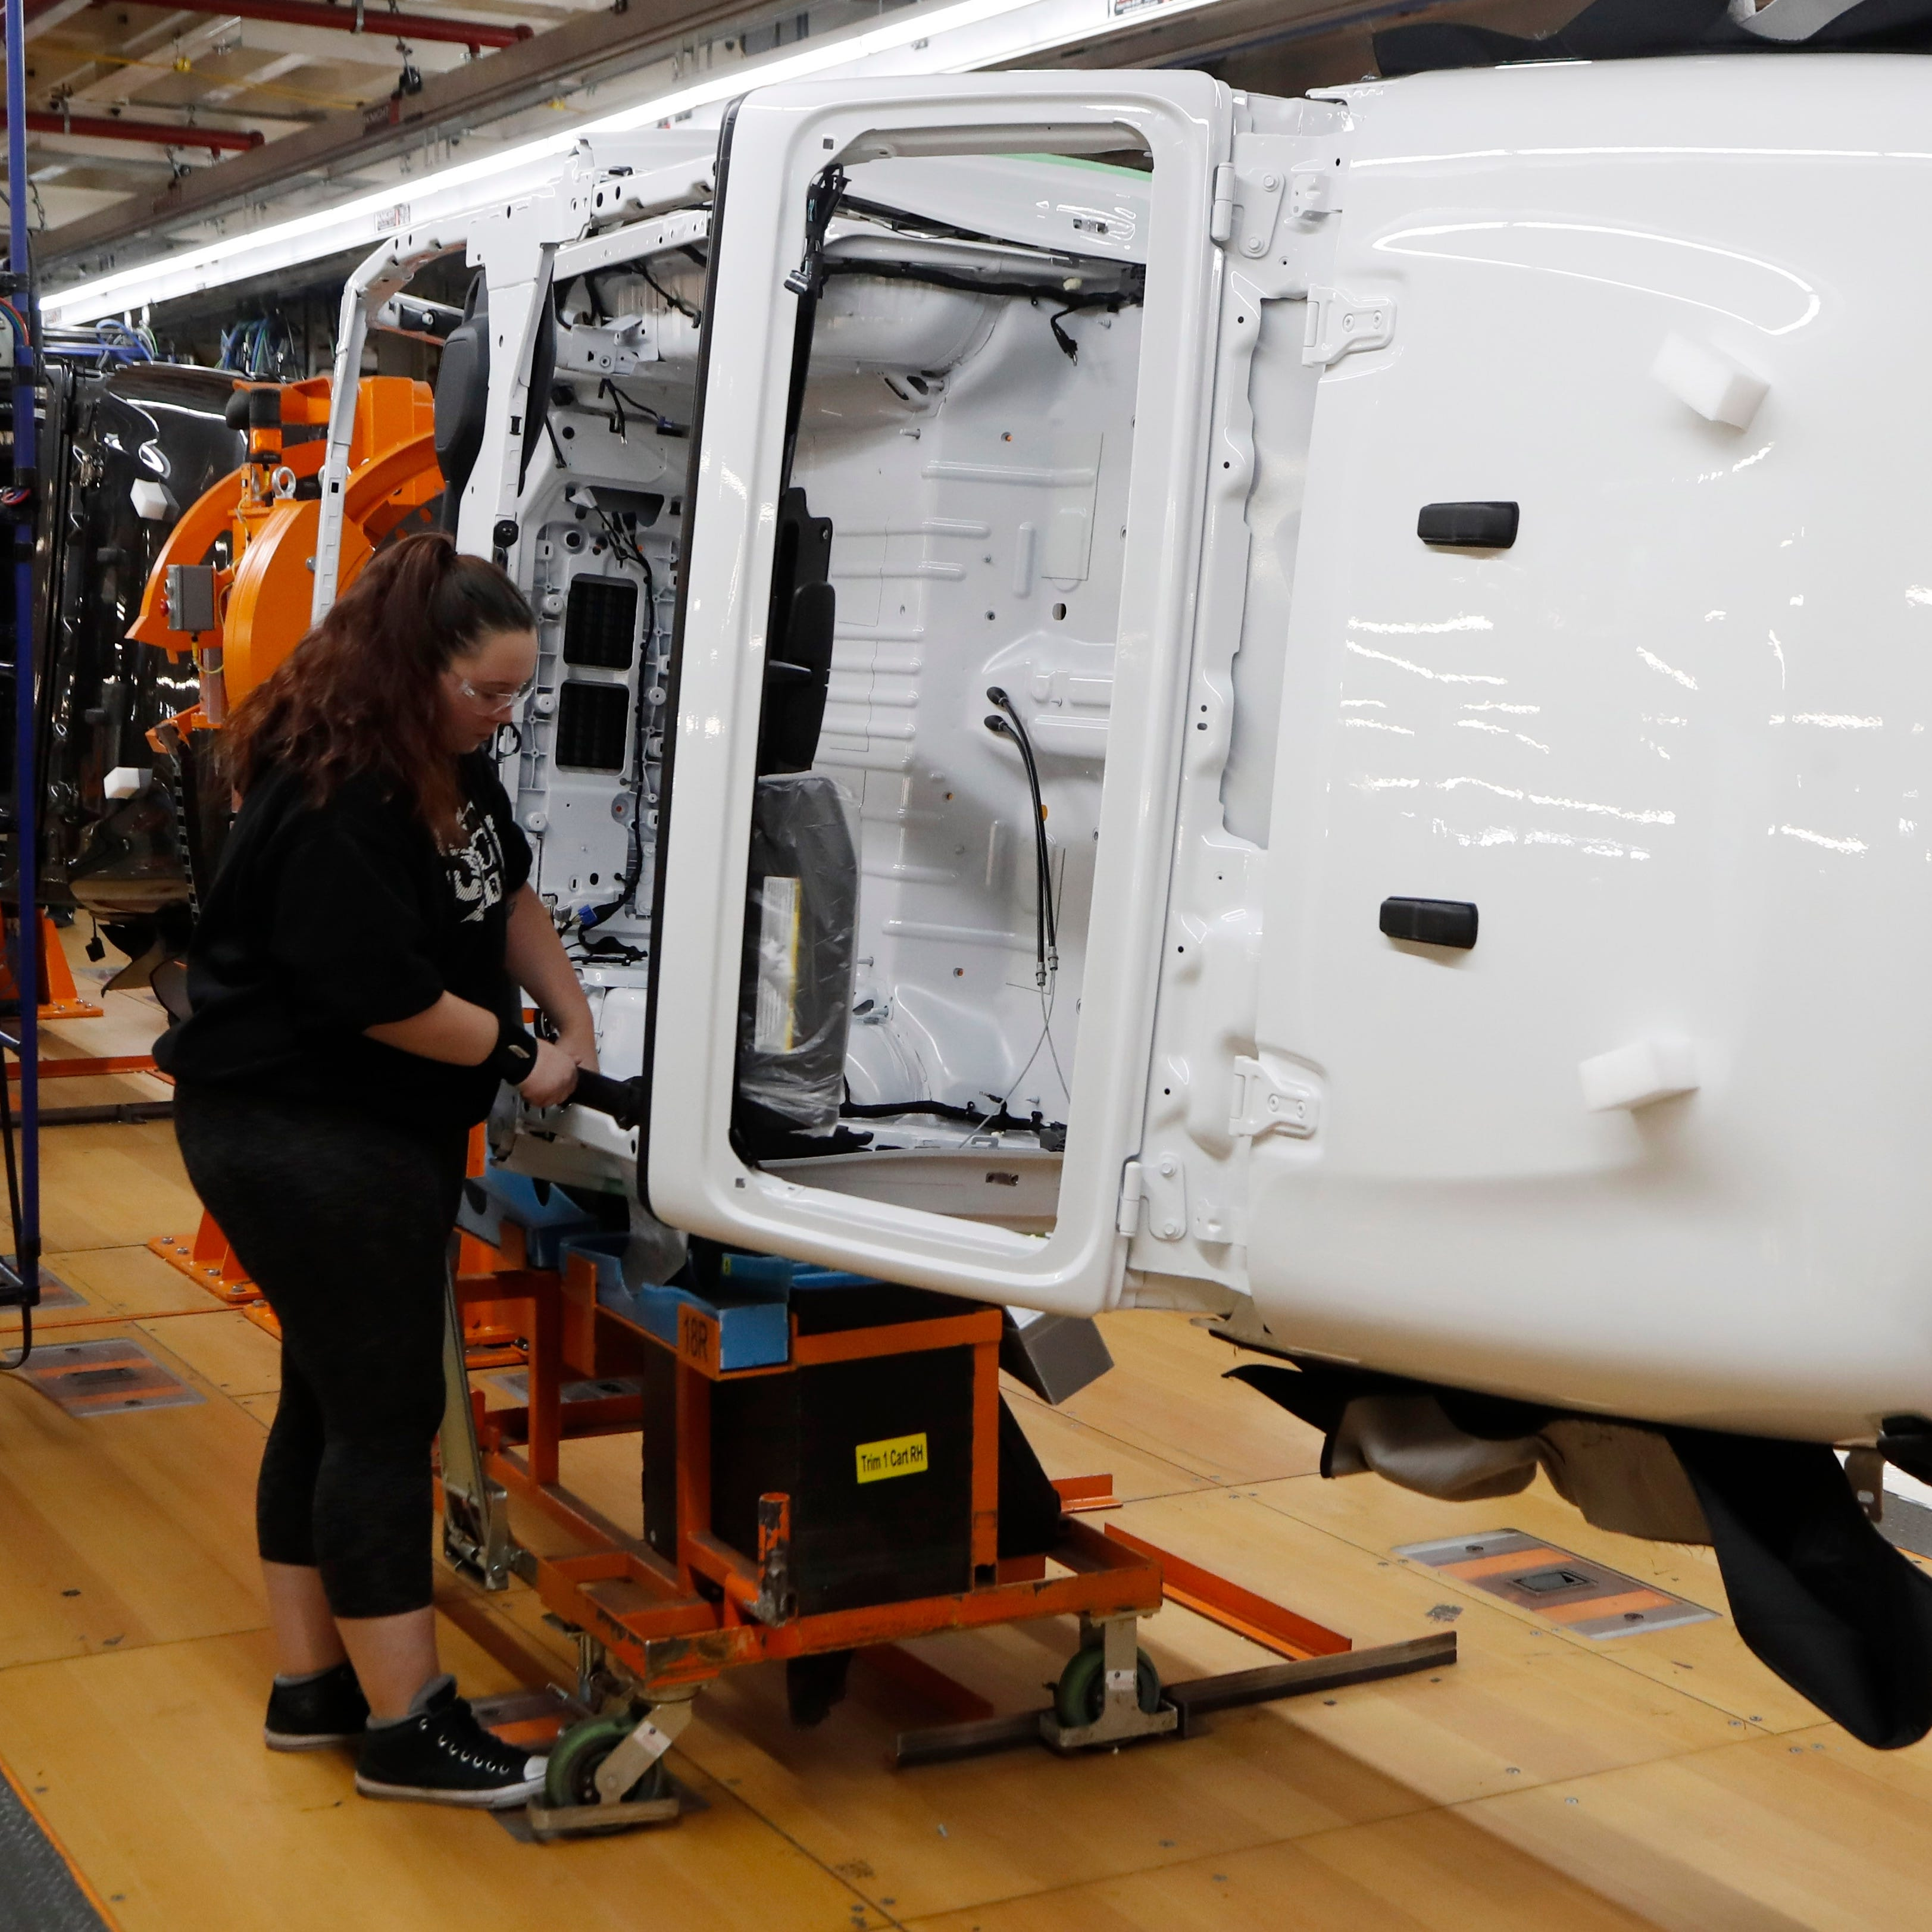 Wrangler-flipper improves productivity at Jeep plant